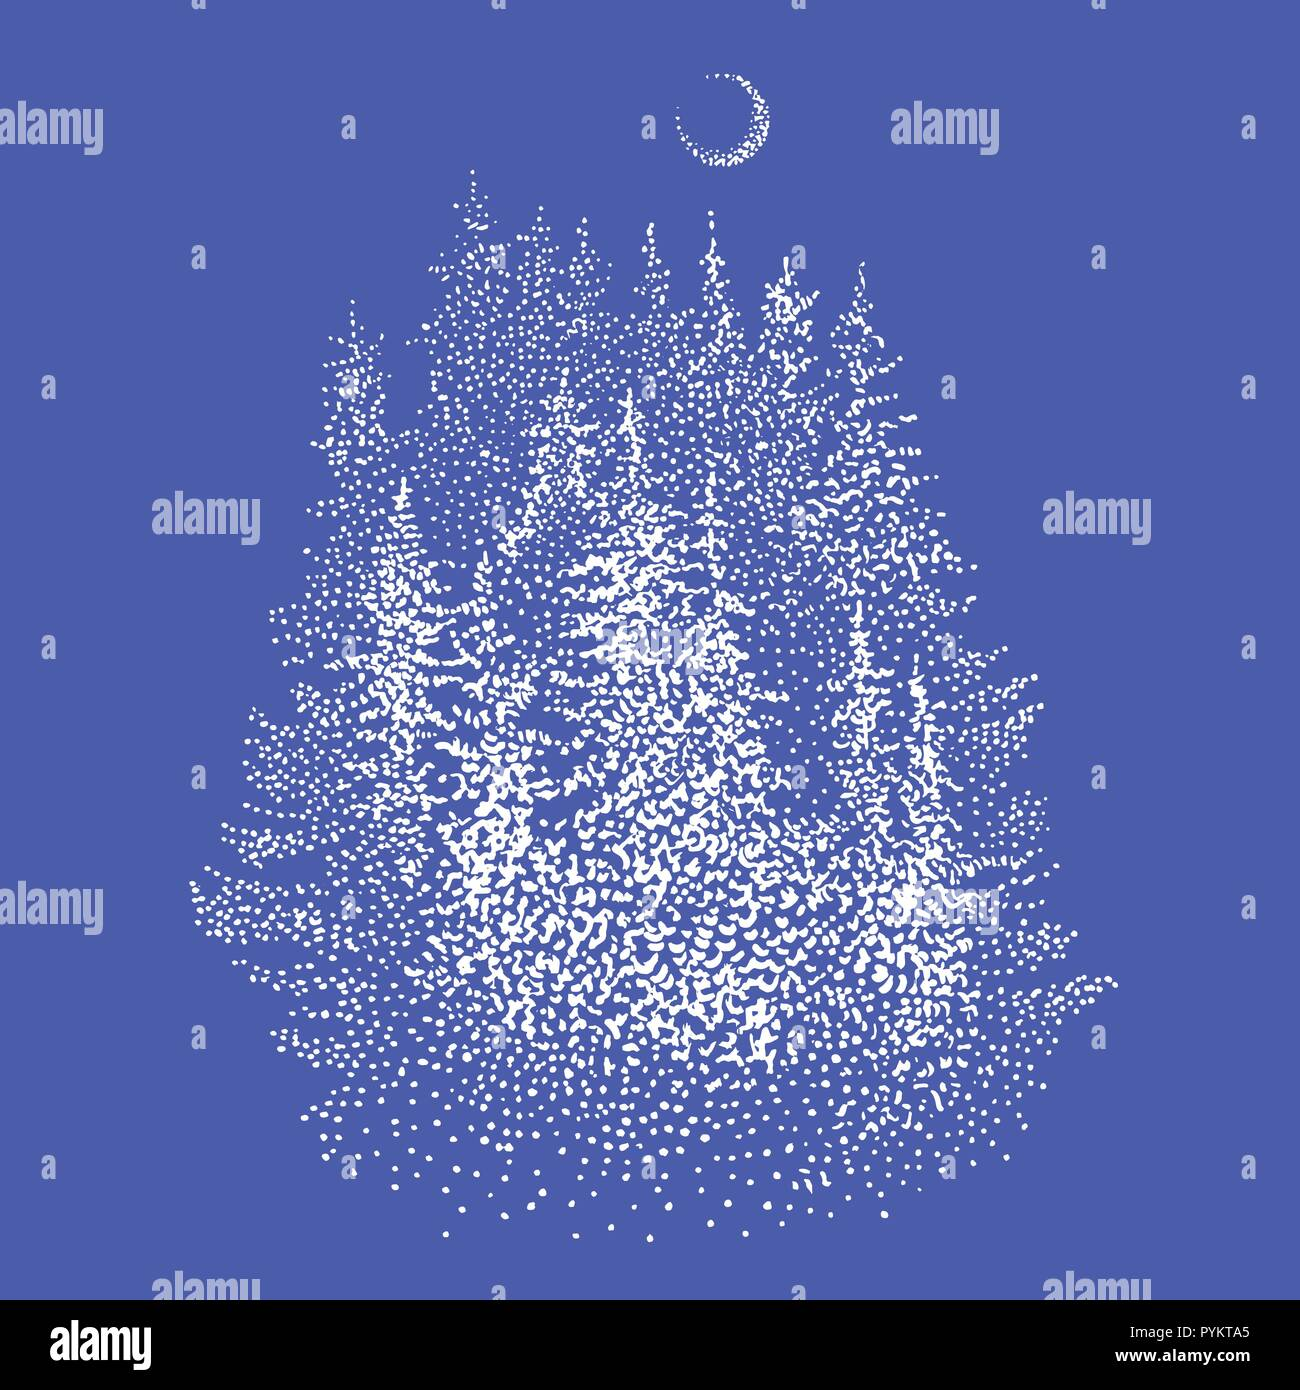 Spruce forest and waxing crescent moon. Hand drawn stippling or dotwork style sketchy graphic illustration in white color. Winter wonderland, wildlife symbol, Christmas greeting card, logo design. - Stock Vector